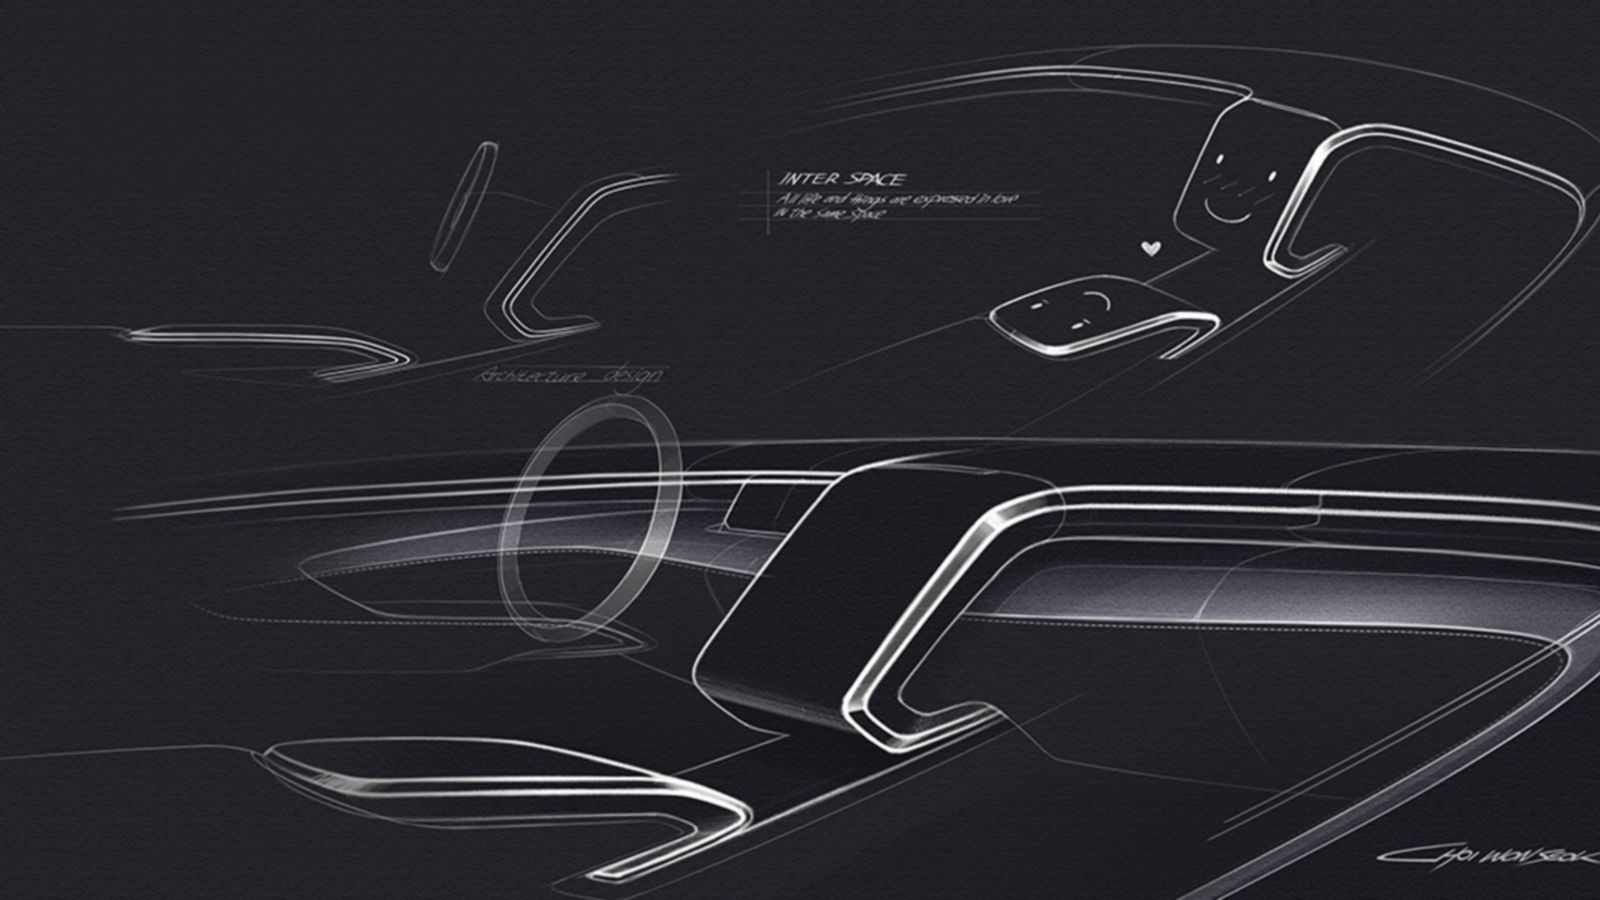 Design sketch of the all-new Hyundai Tucson compact SUV interior design.